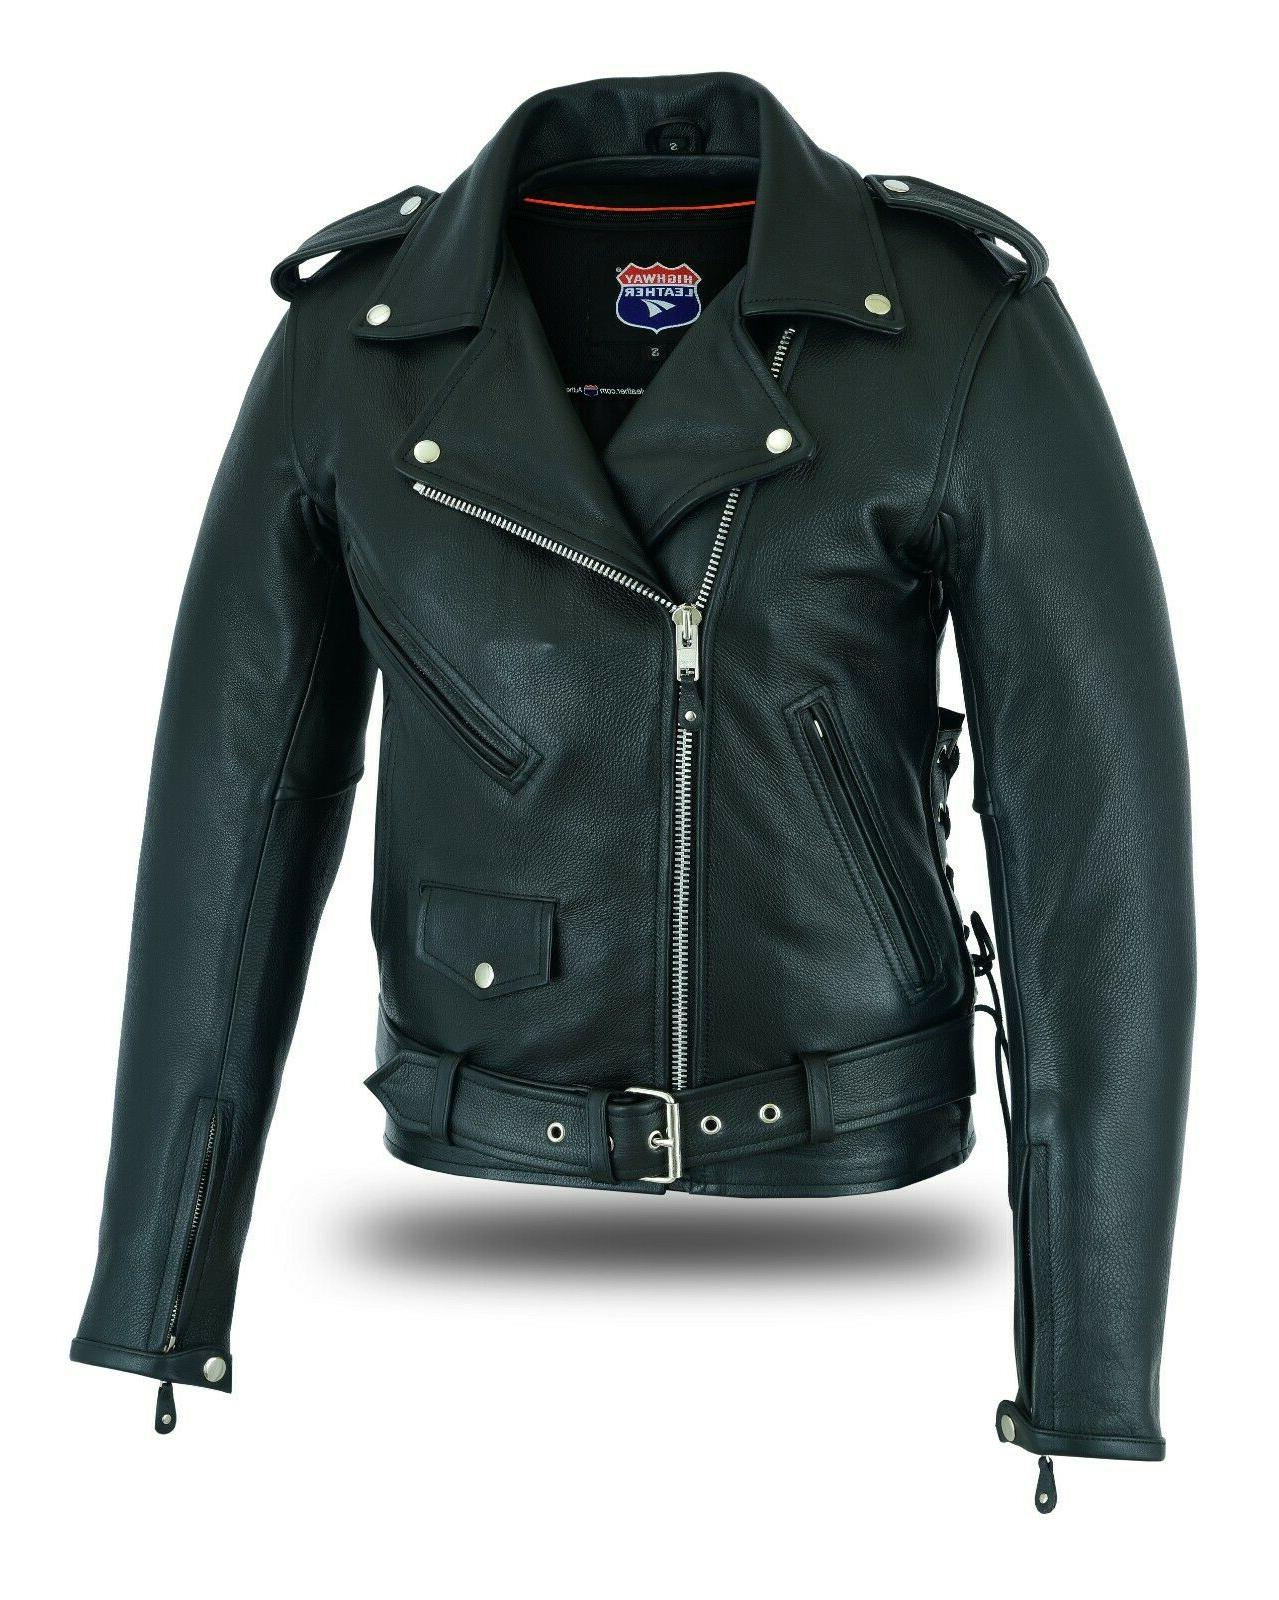 old school police style motorcycle leather jacket